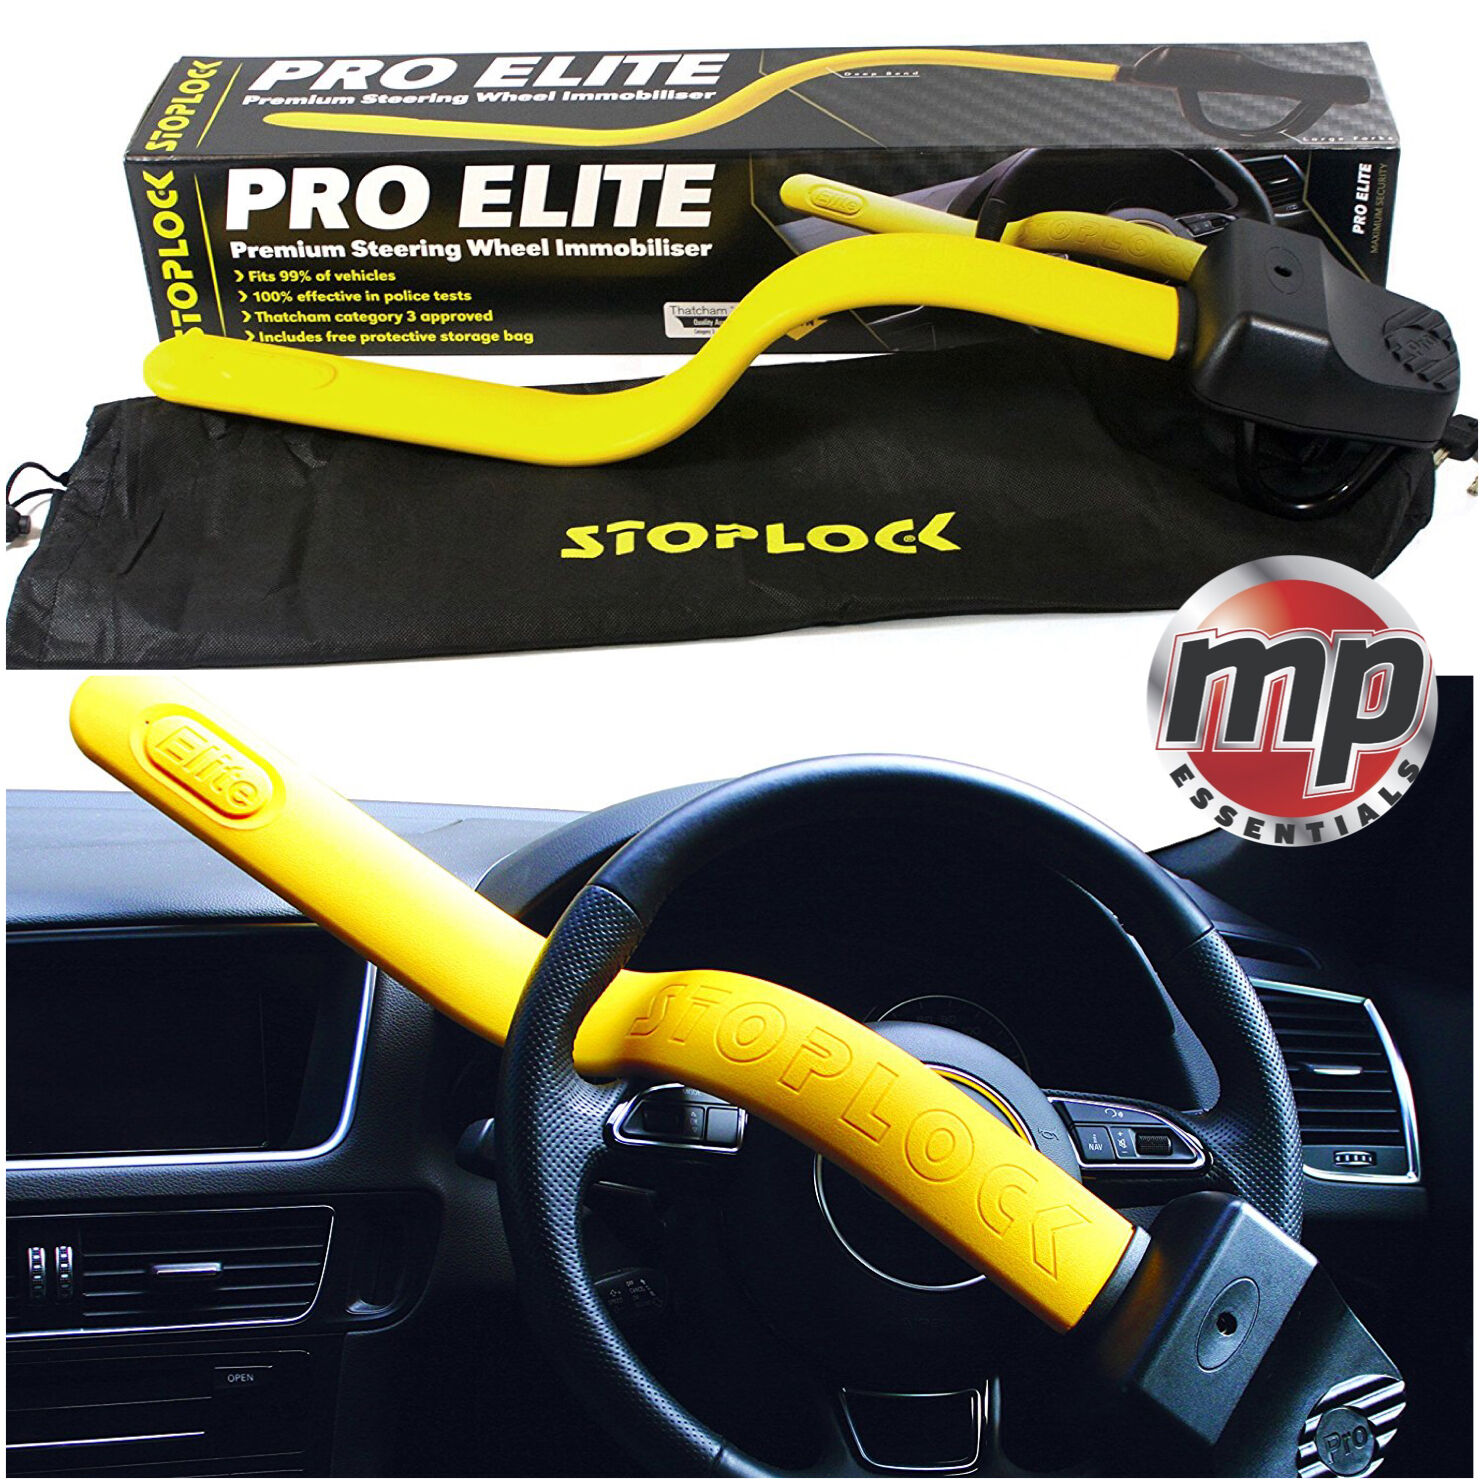 Fiat Ducato Stoplock Pro Steering Wheel Lock Professional Steering Clamp